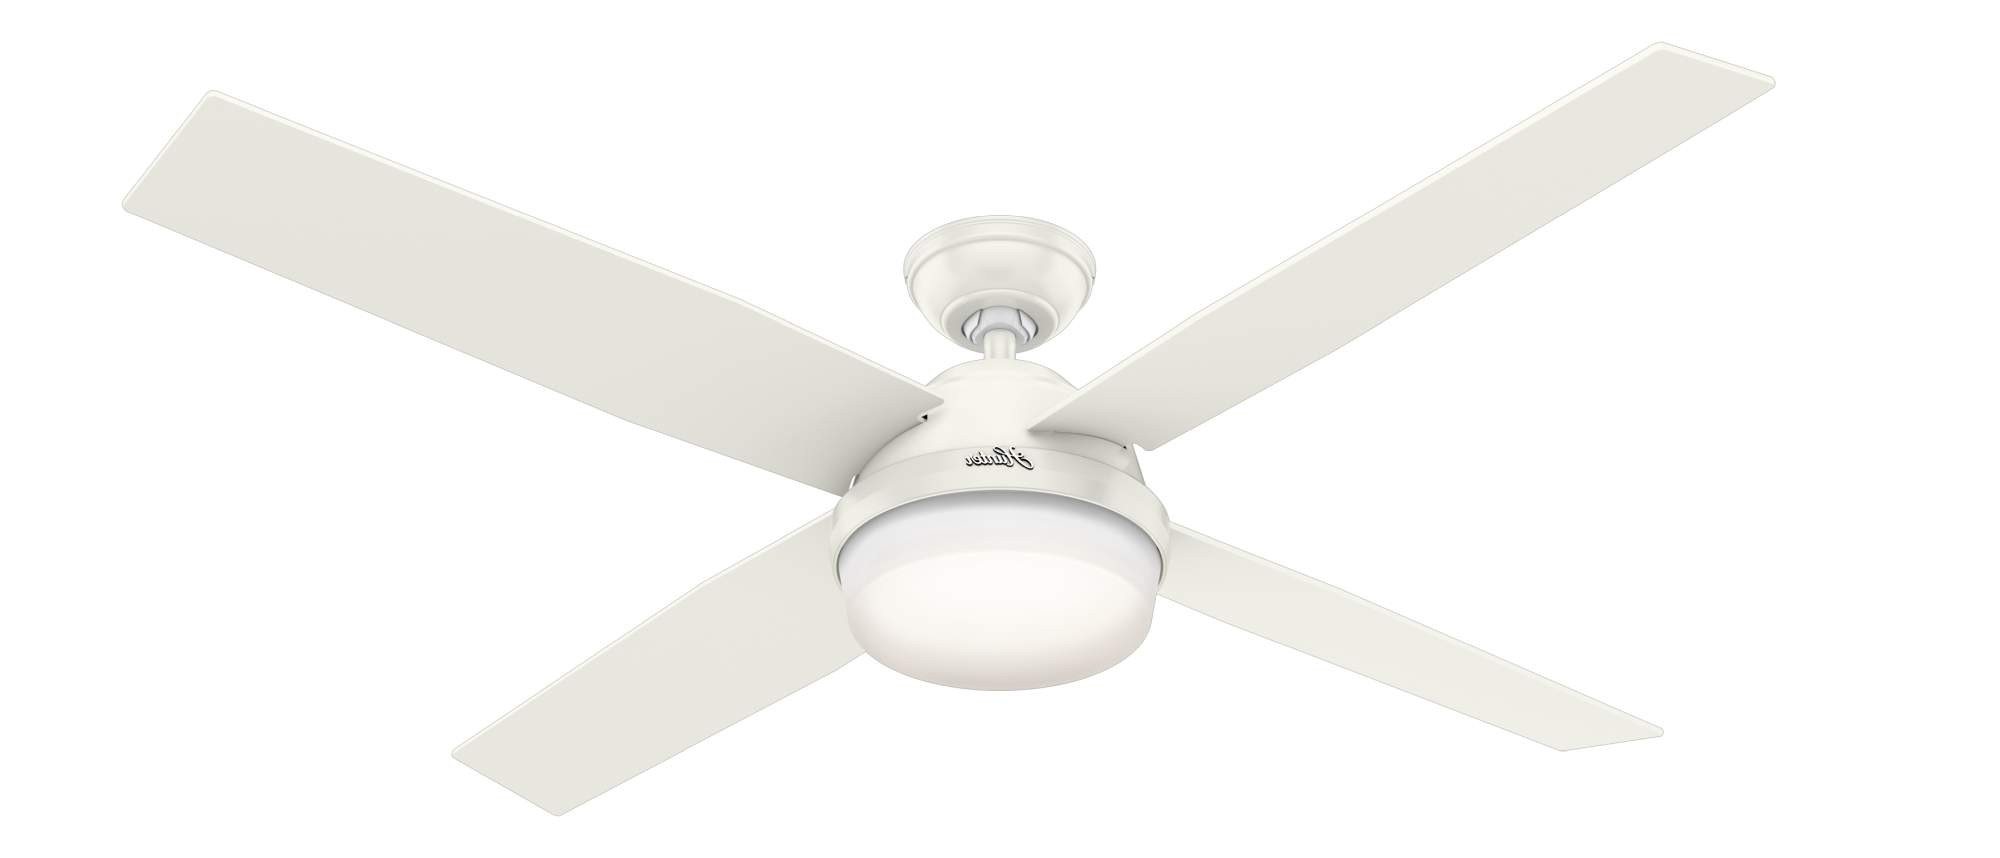 Widely Used Hunter Dempsey 60 Light Ceiling Fan Model 59442 In Dempsey 4 Blade Ceiling Fans (View 16 of 20)